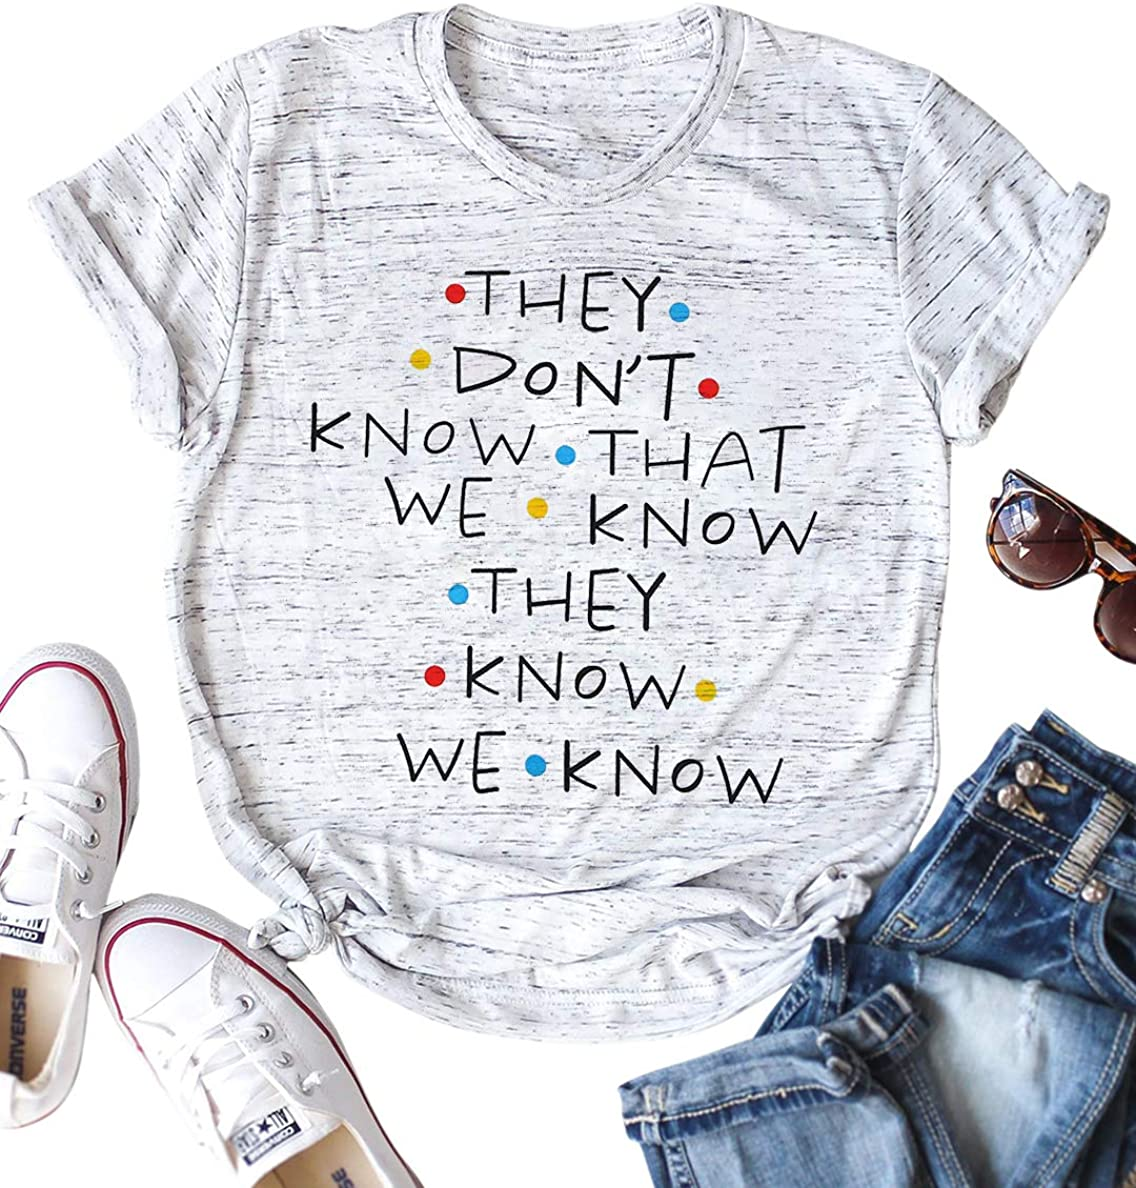 Women Friends They Don't Know That We Know Graphic Short Sleeve T Shirt Blouse Tees Tops